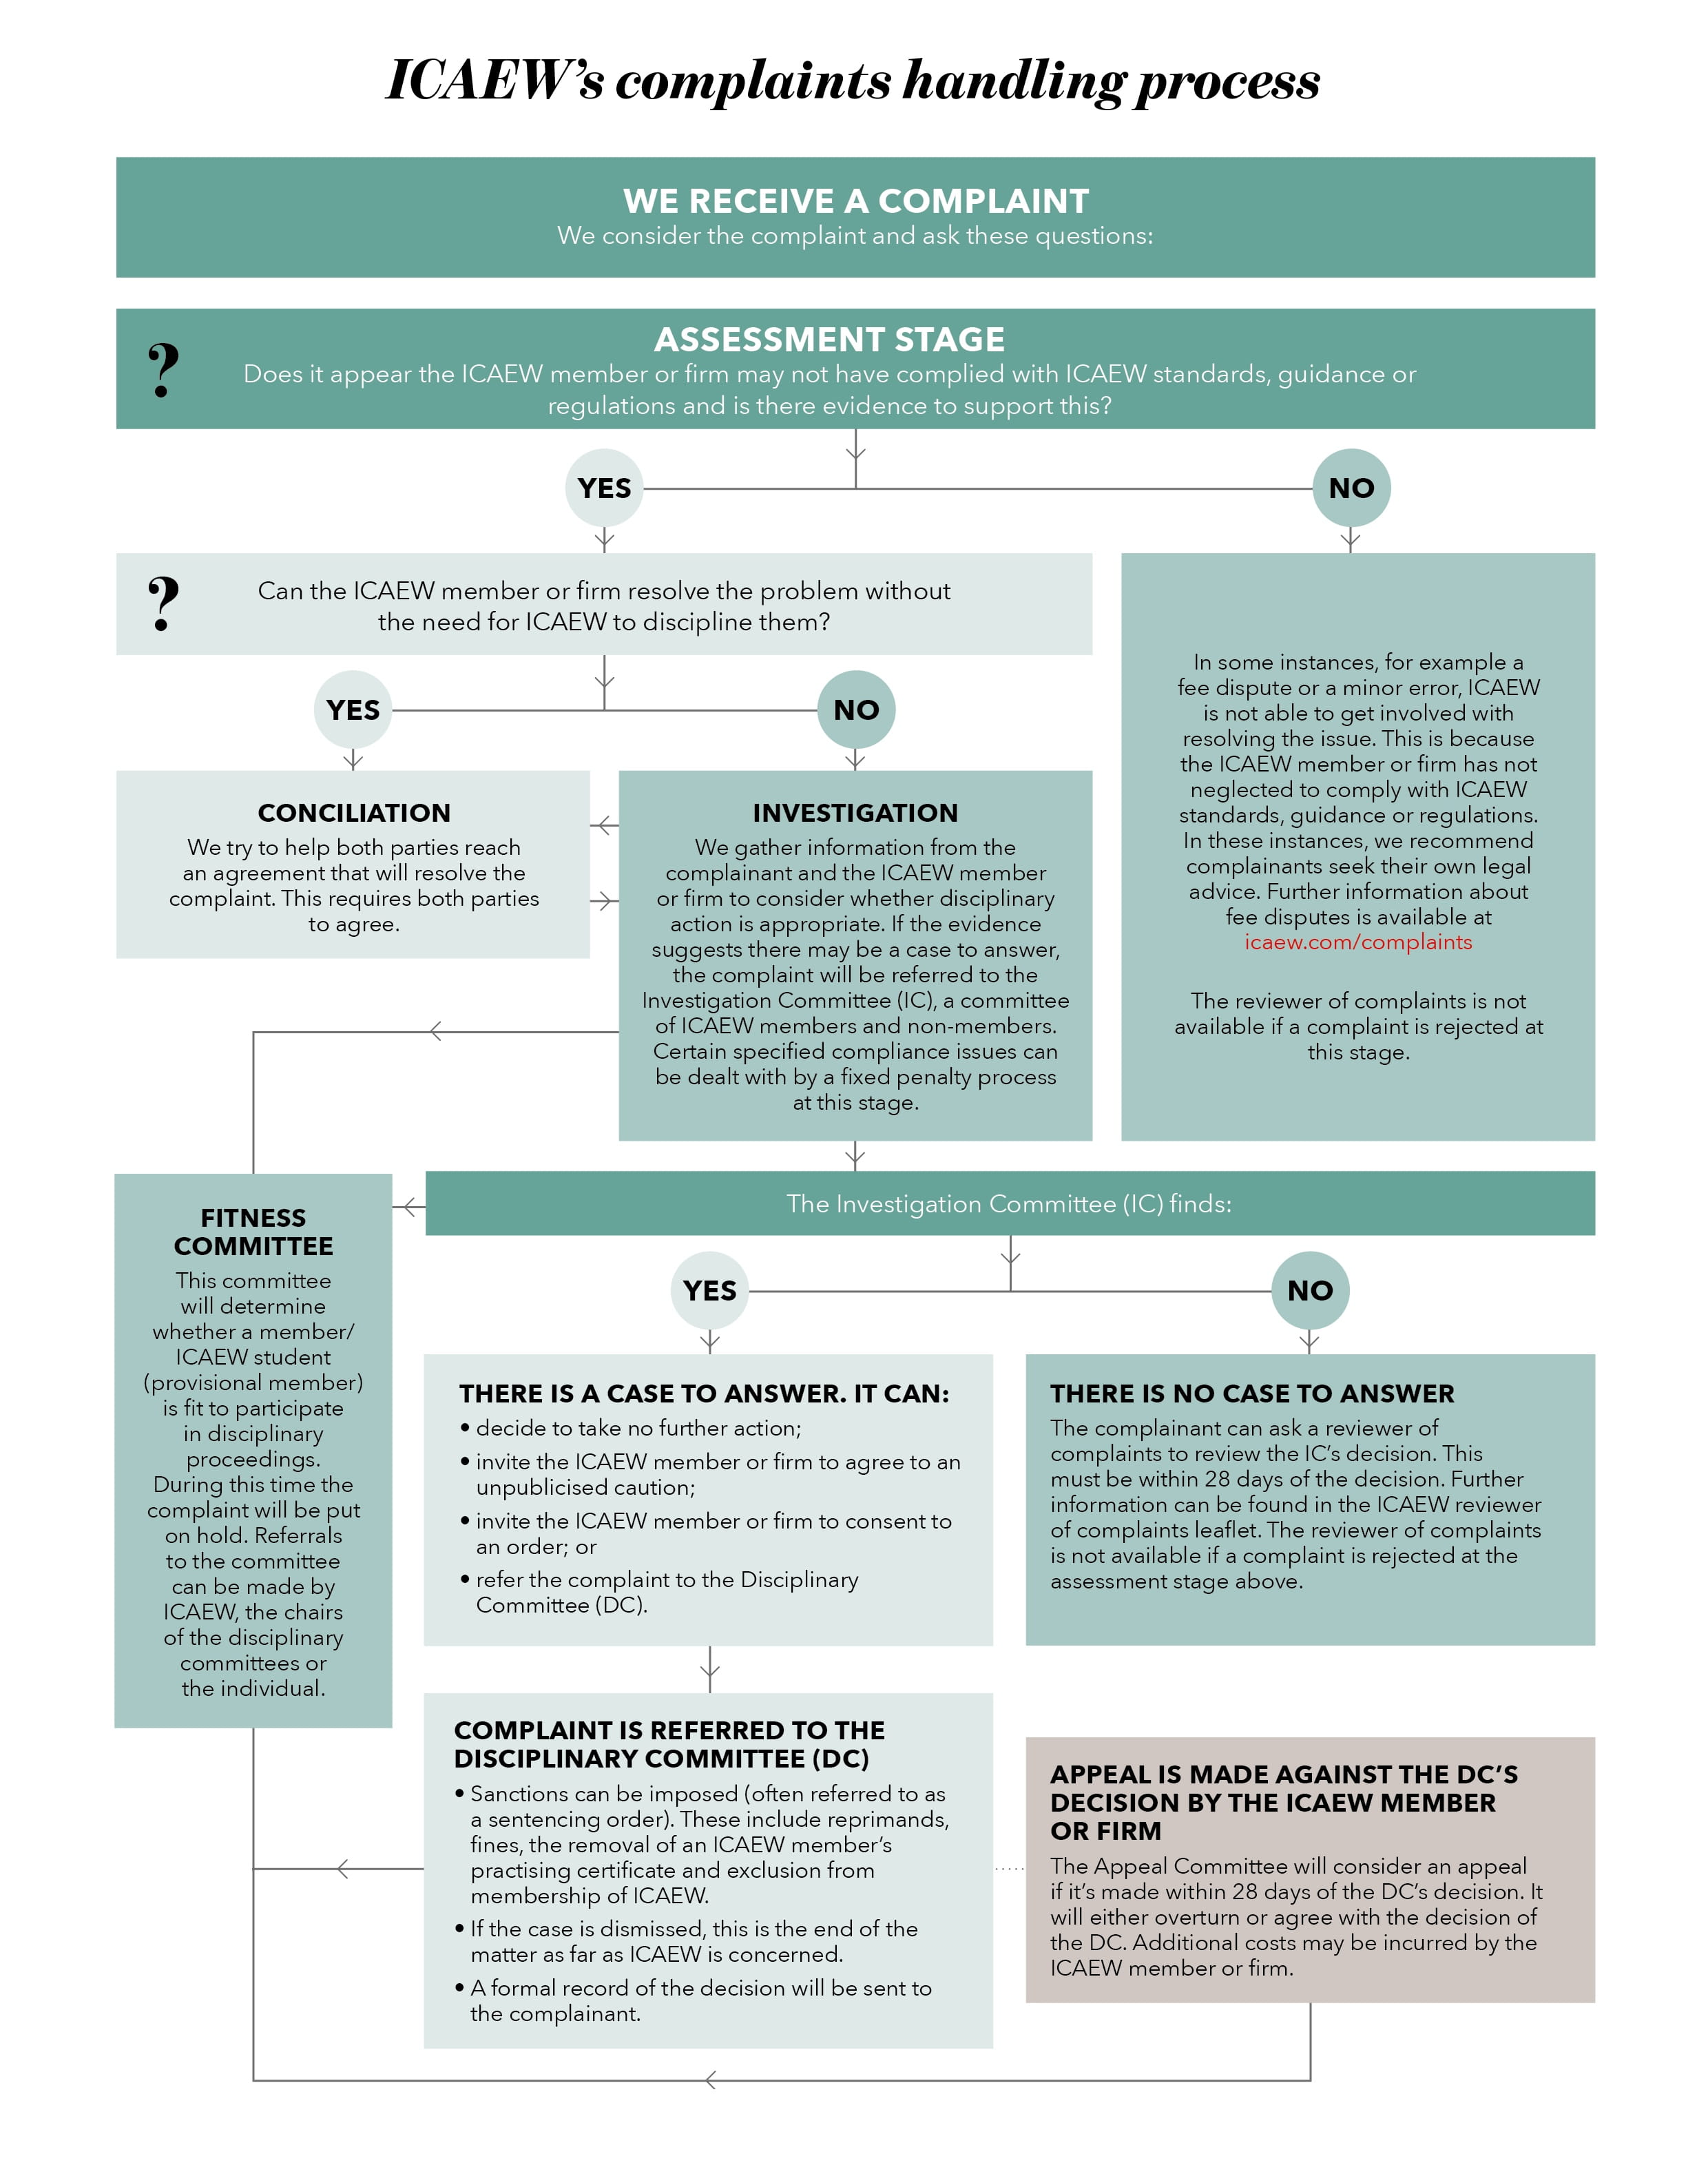 How To Make A Complaint Complaints Process Icaew Flow Diagram Rules View Chart That Sets Out Icaews Handling